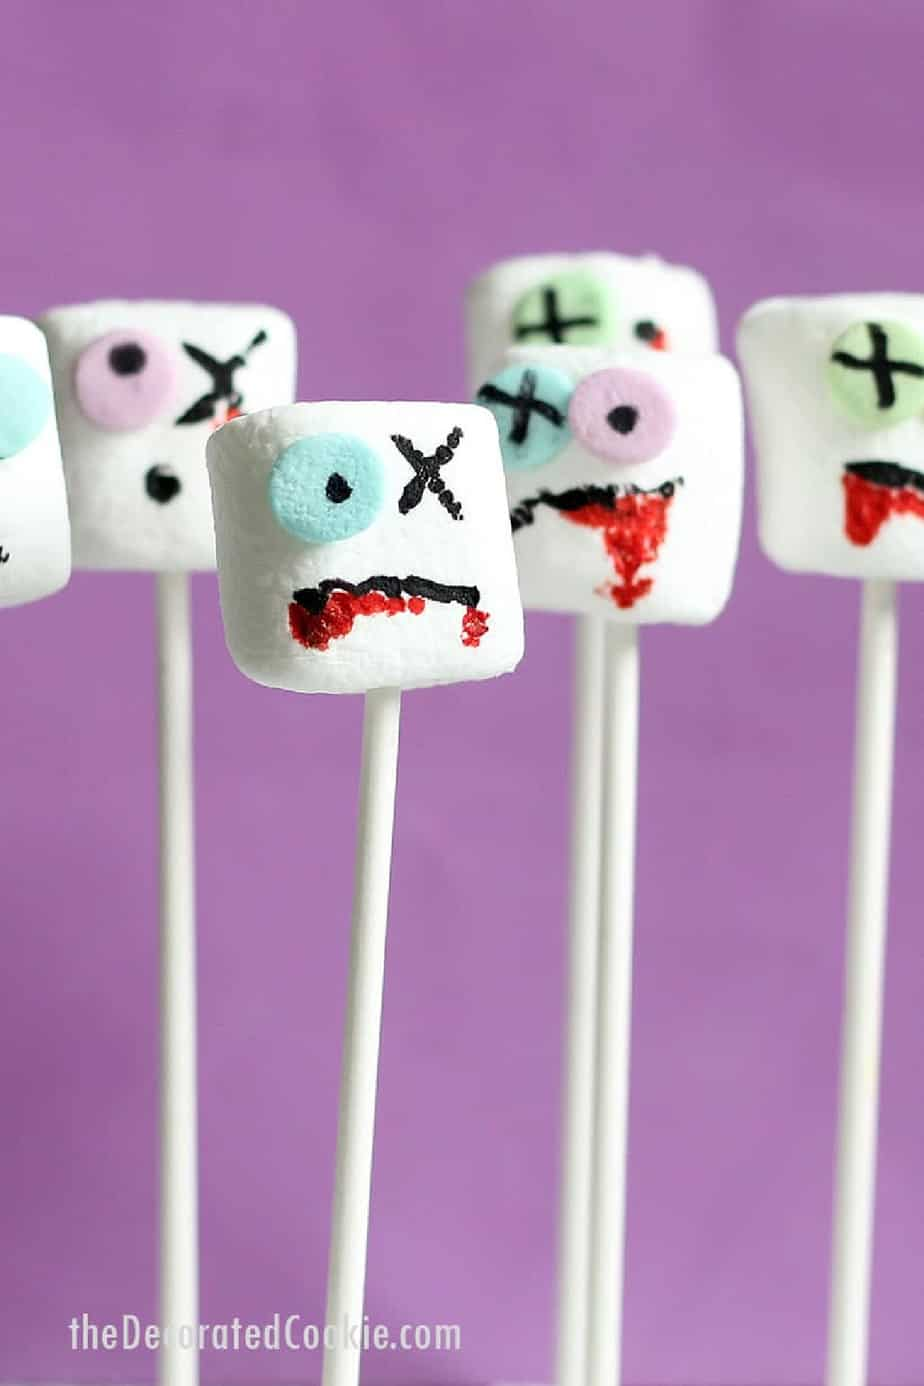 Chocolate covered marshmallows decorated like zombies